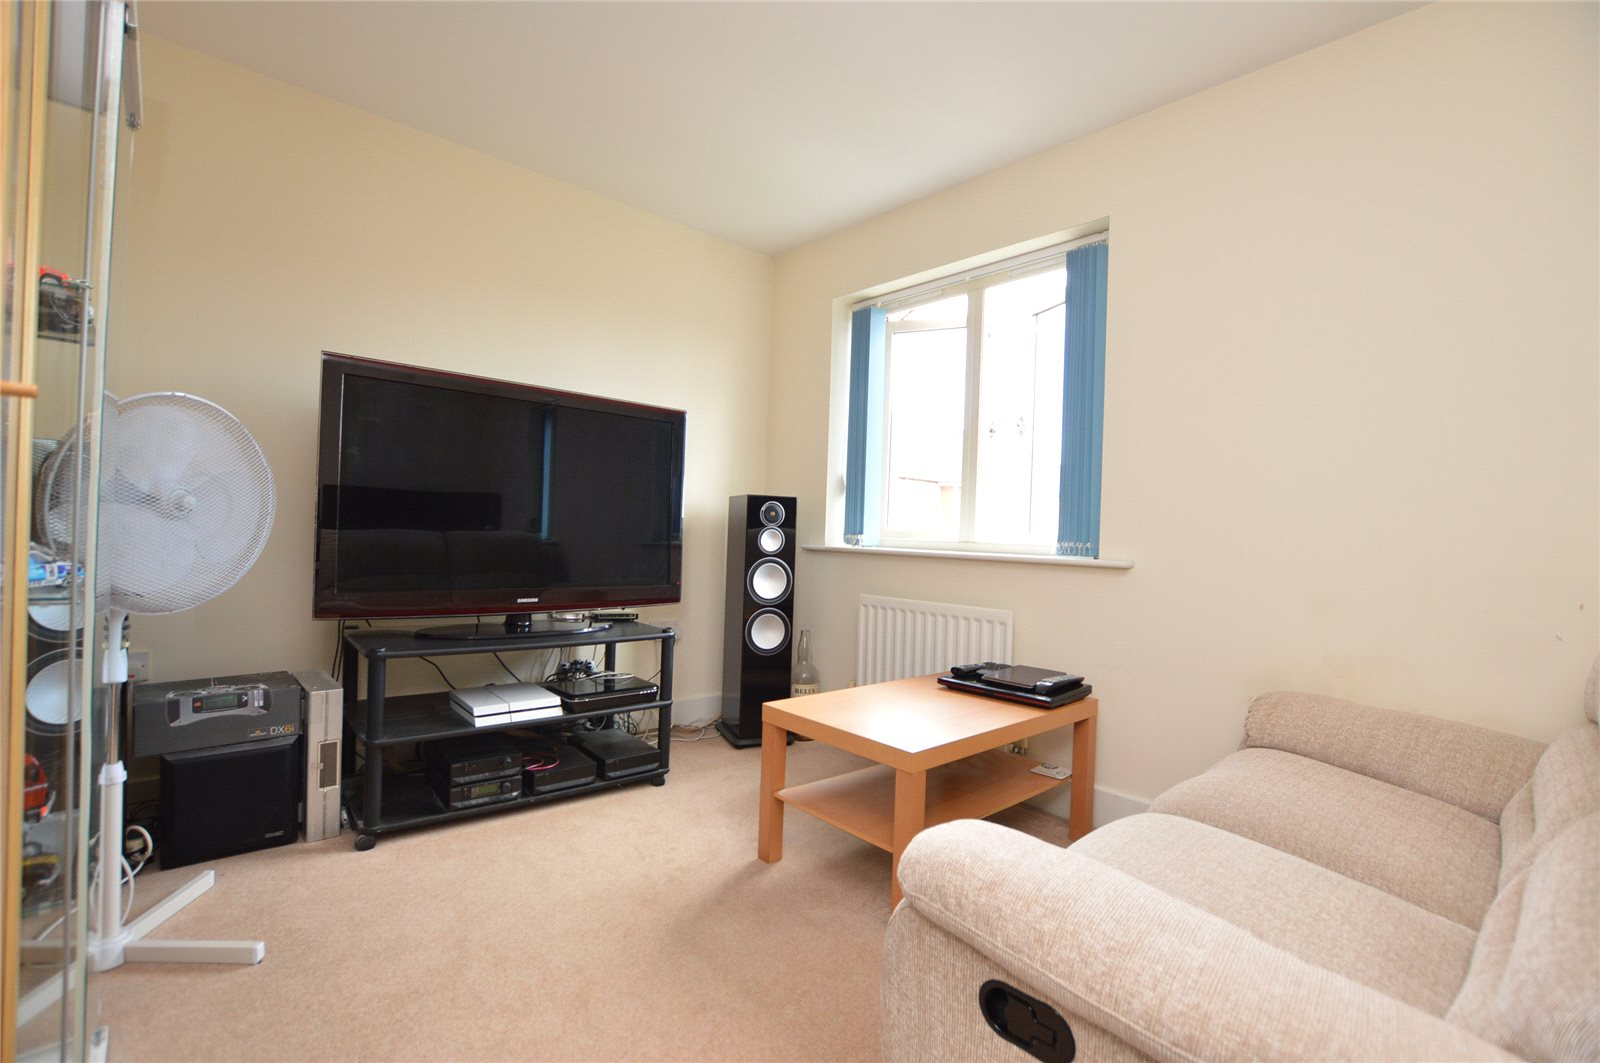 Property for sale in Allerton Bywater, living room area